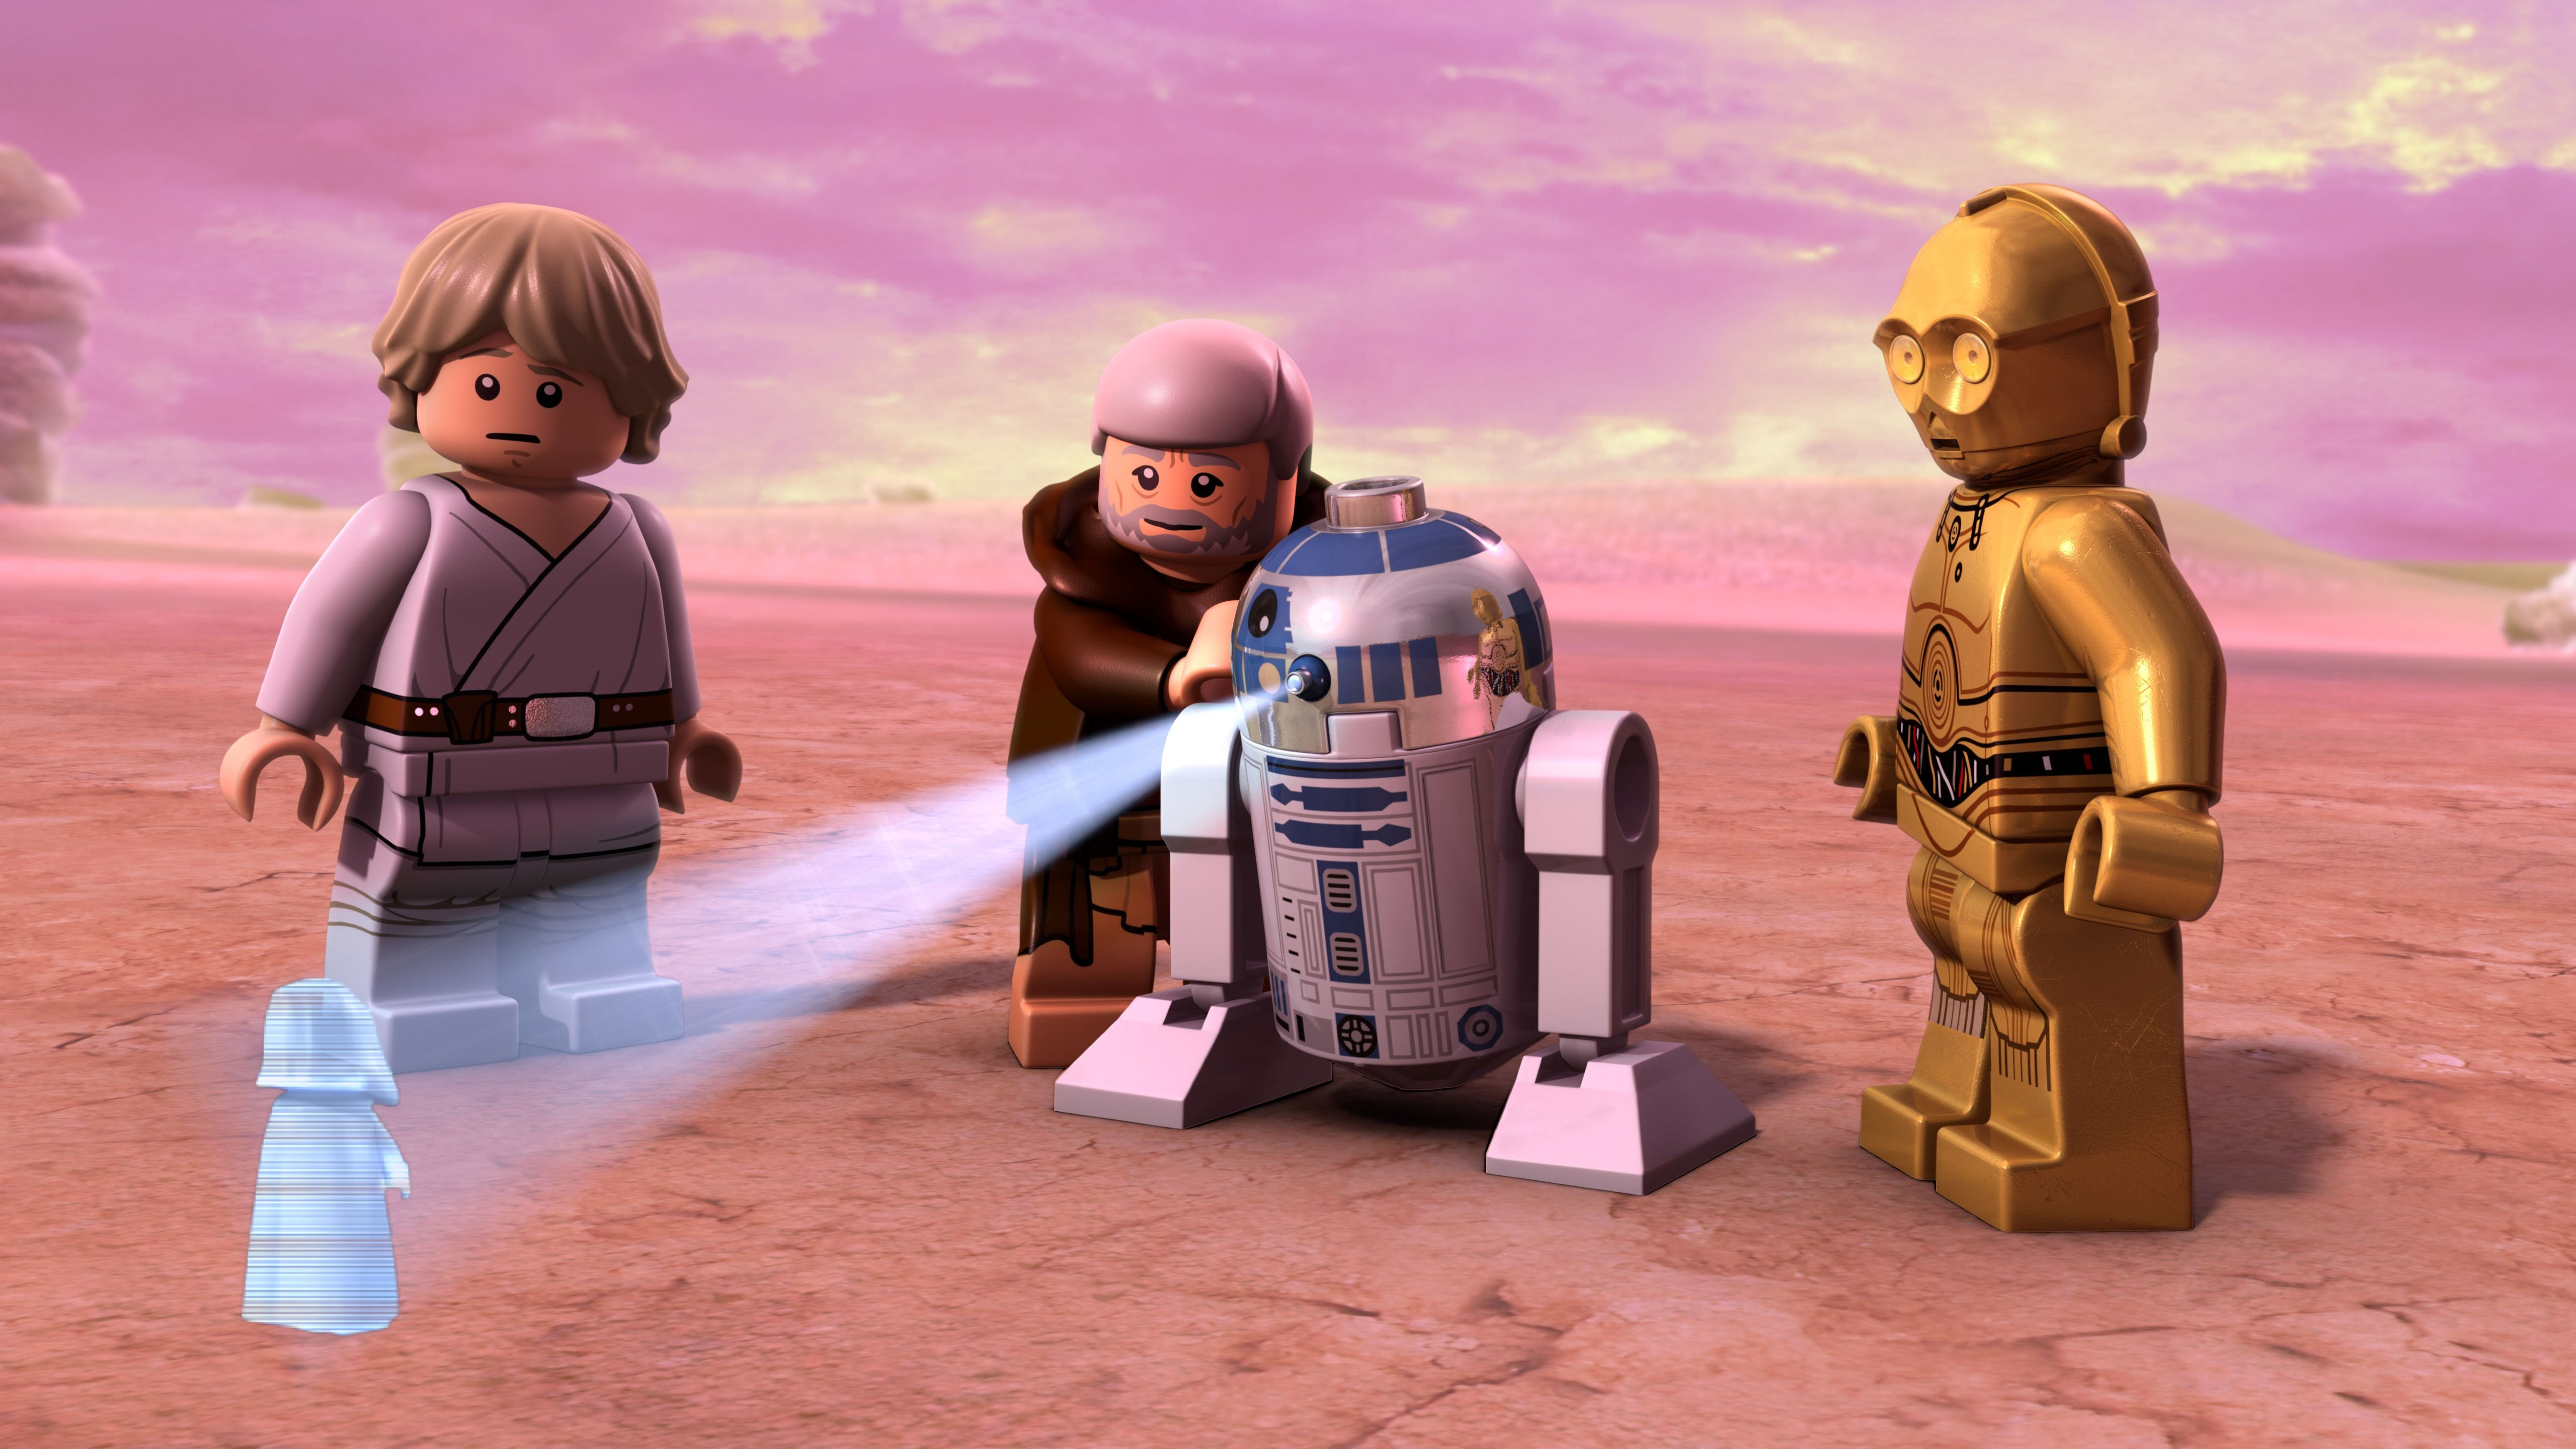 5120x2880 Lego Star Wars Droid Tales Still 5k Wallpaper Hd Movies 4k Wallpapers Images Photos And Background